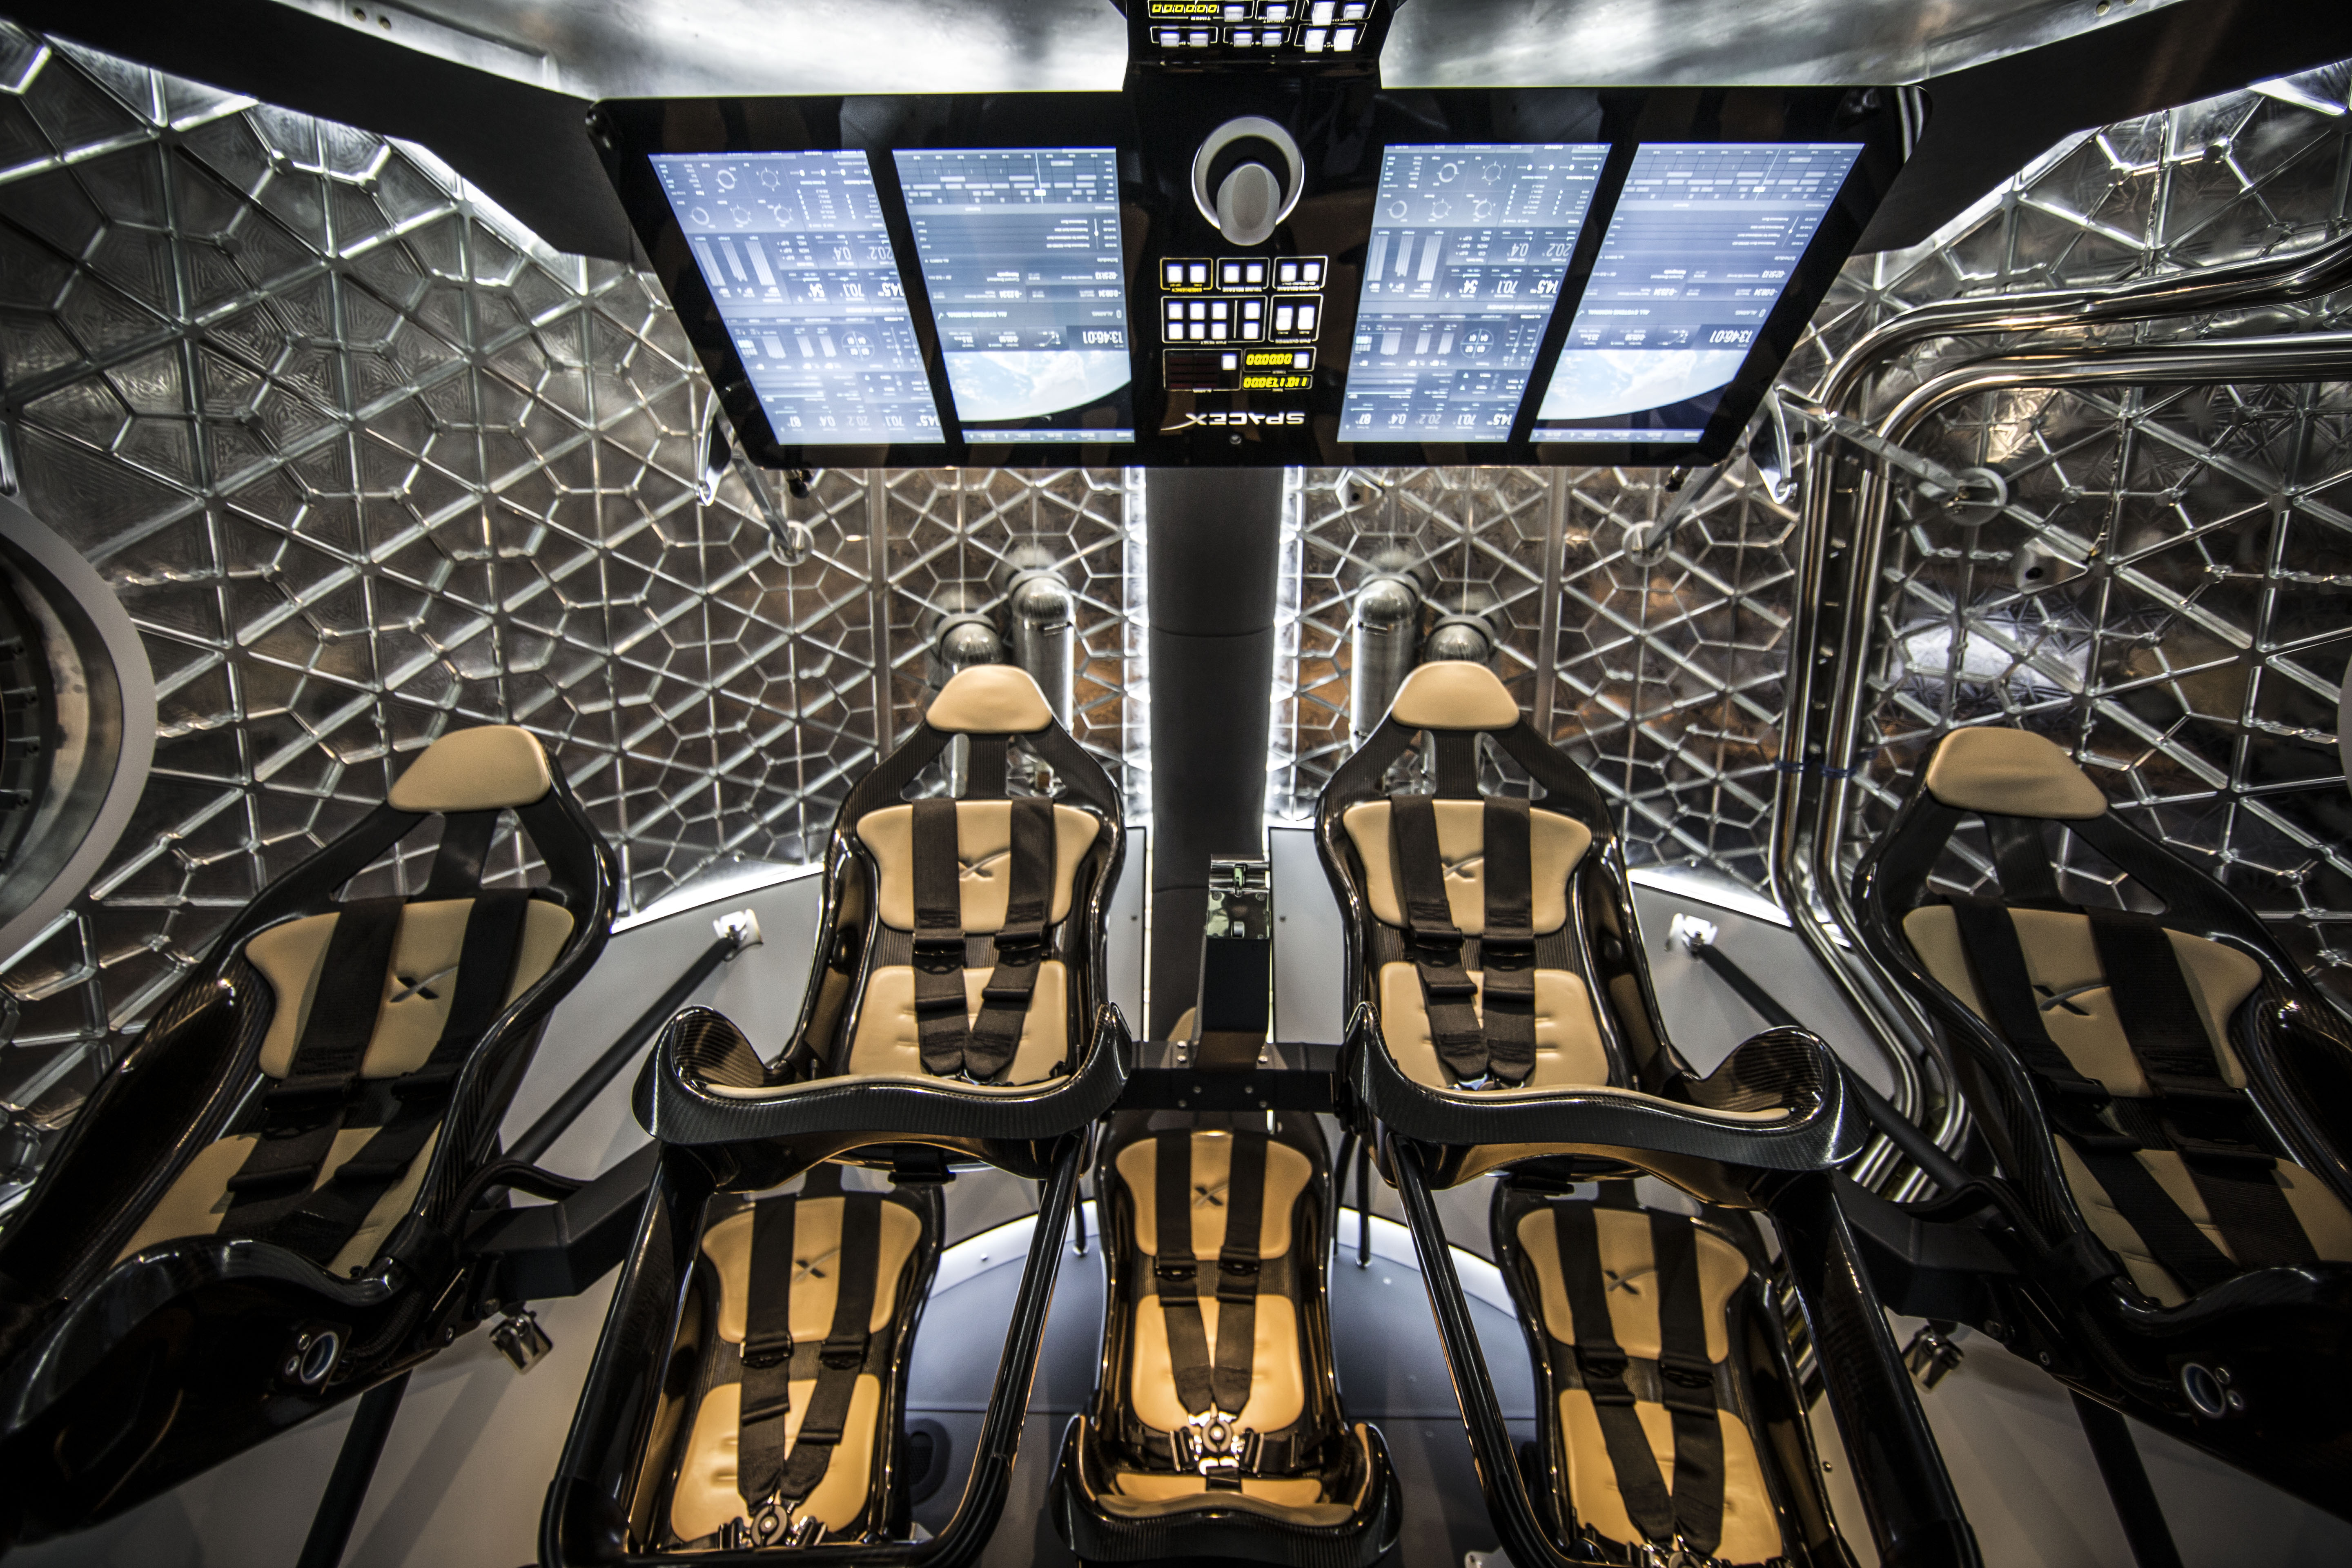 Sweet ride: The interior of SpaceX's Dragon spacecraft. For the first moon mission only two seats would be filled.